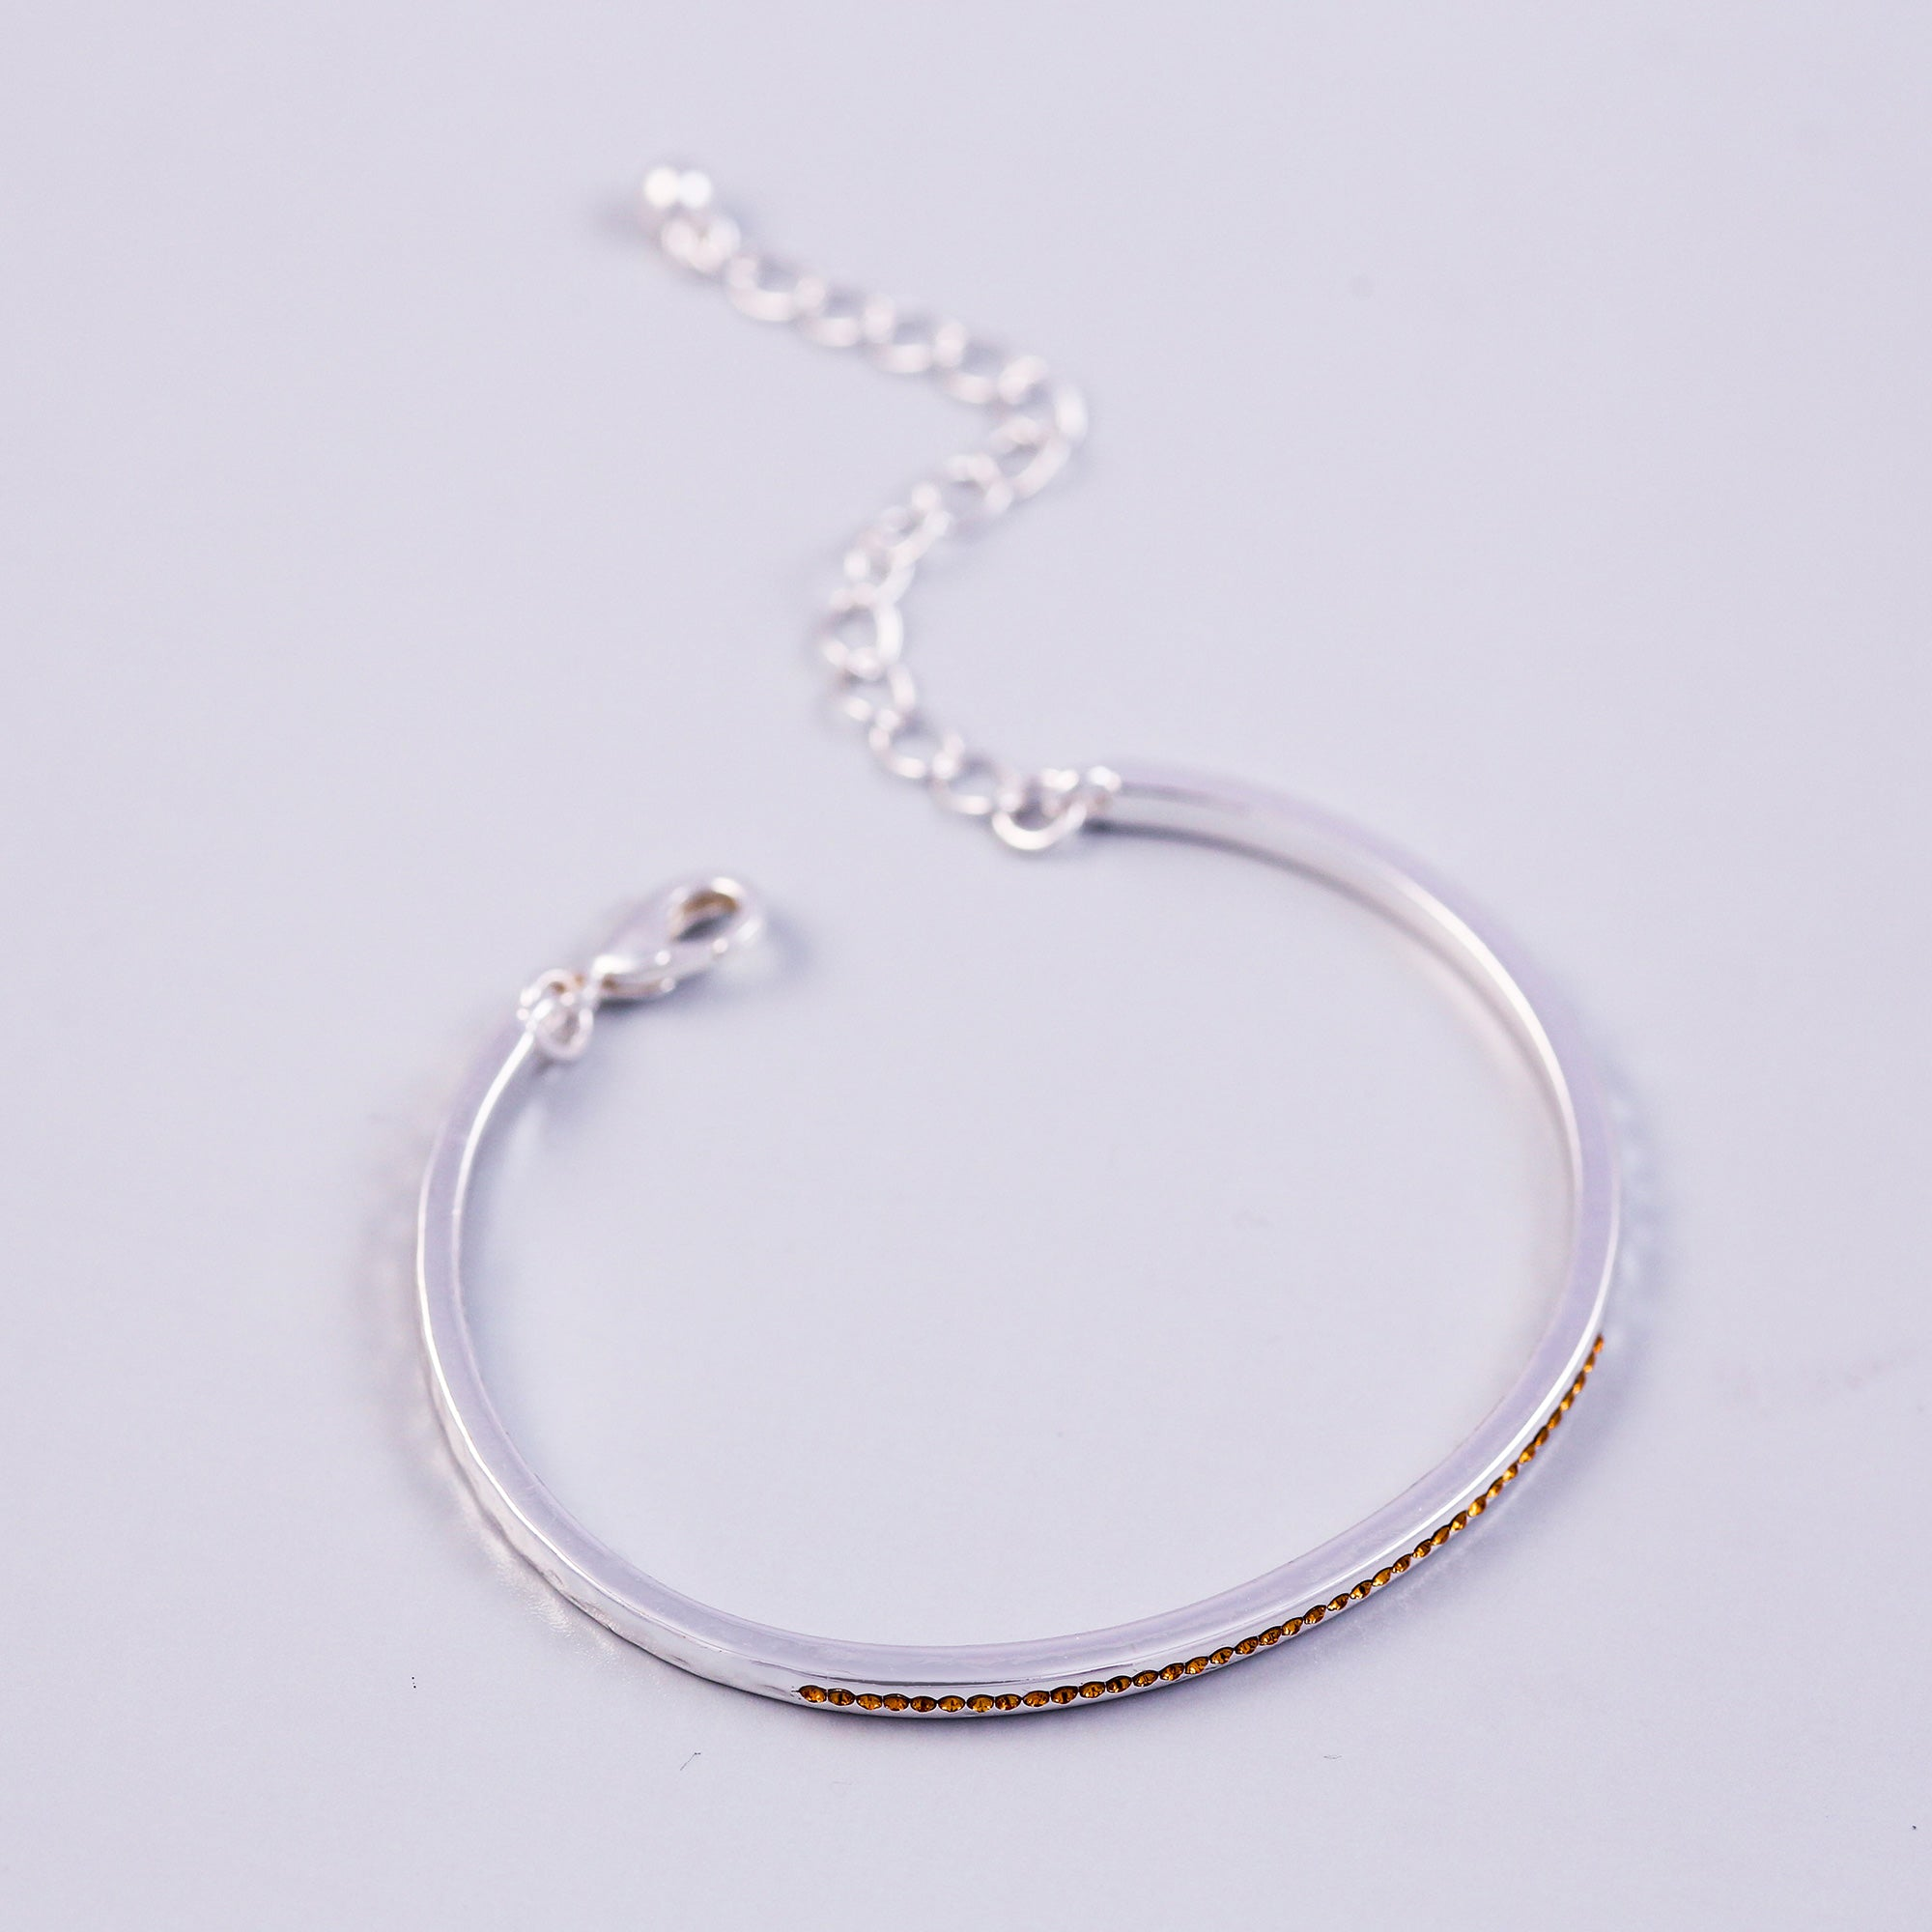 Silver Topaz November Birthstone Bangle